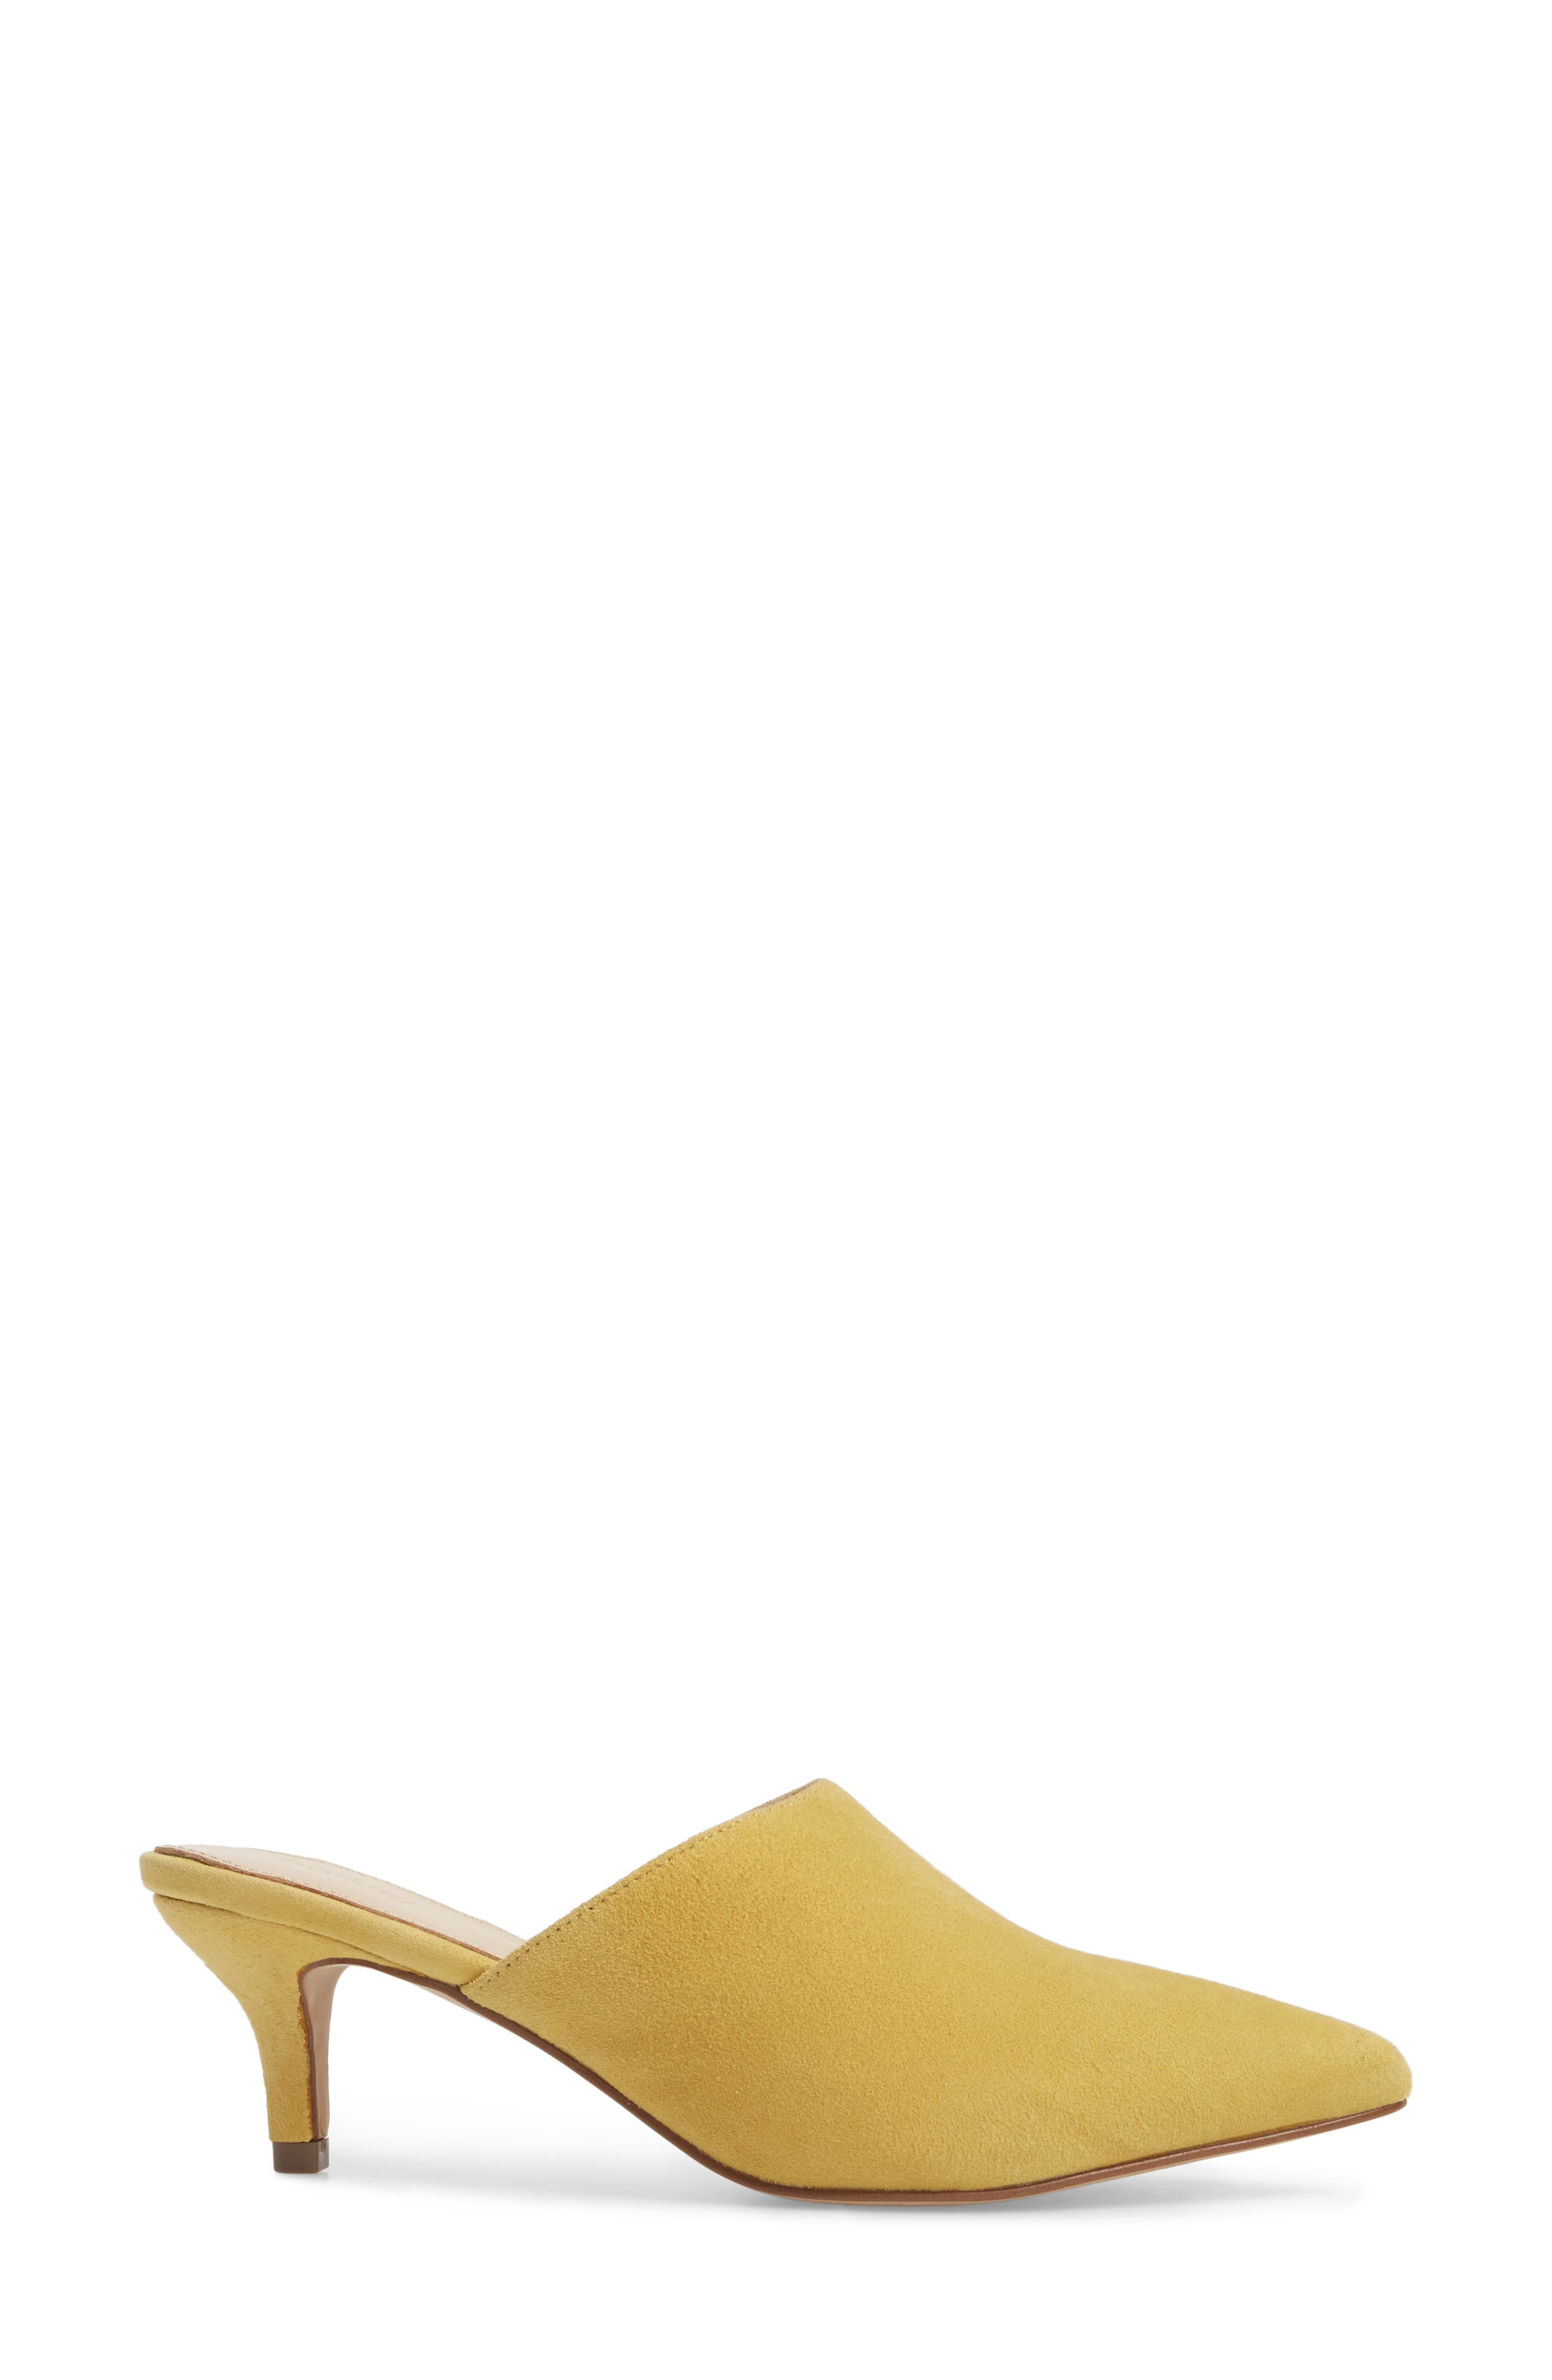 Paley Mule,                             Alternate thumbnail 3, color,                             Pineapple Suede